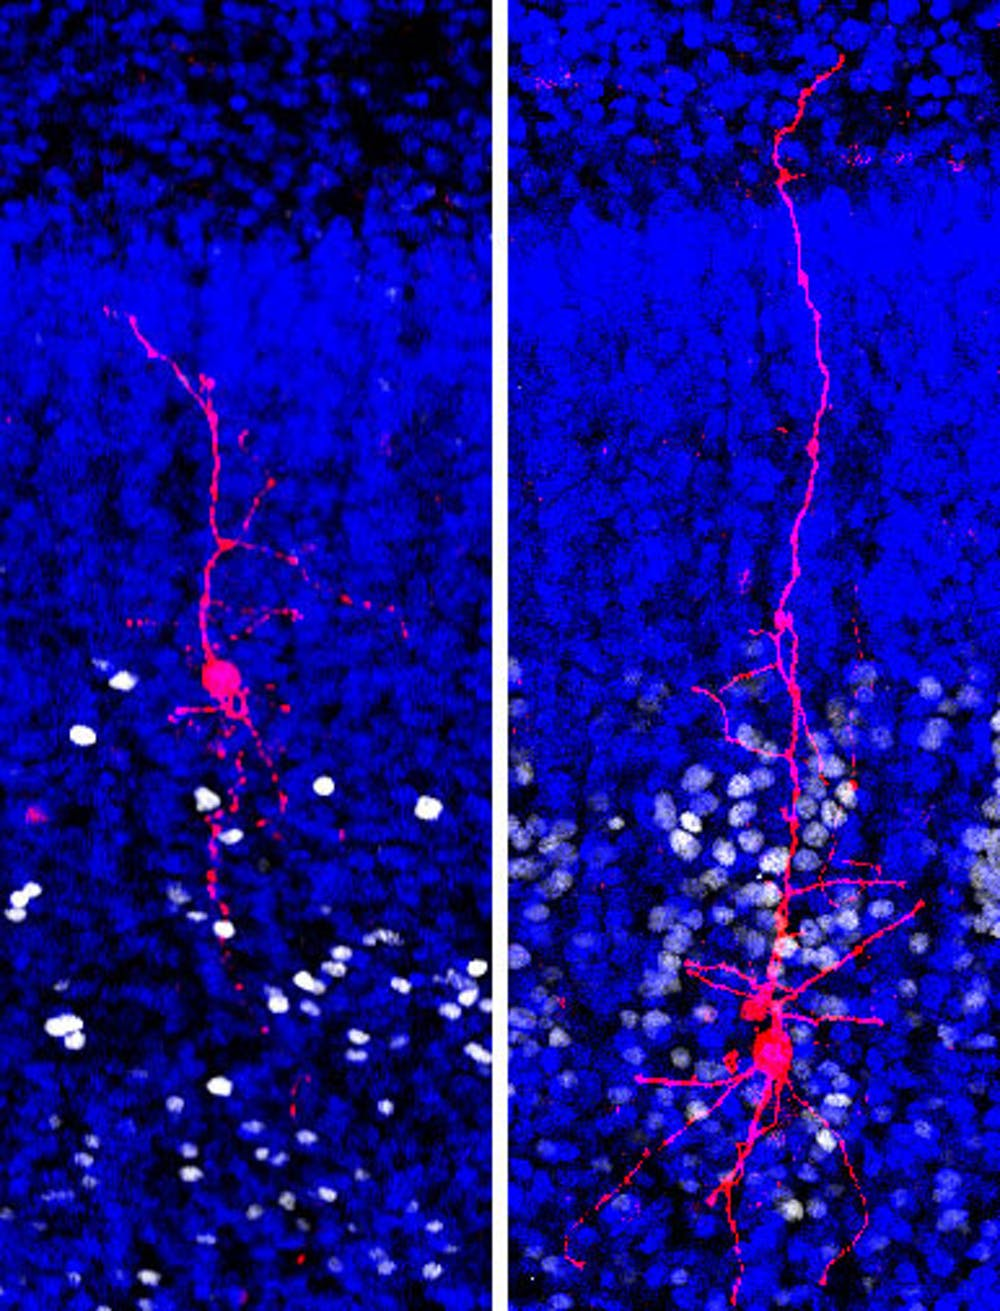 Research Identifies Complex Of Neurons >> New Autism Research On Single Neurons Suggests Signaling Problems In